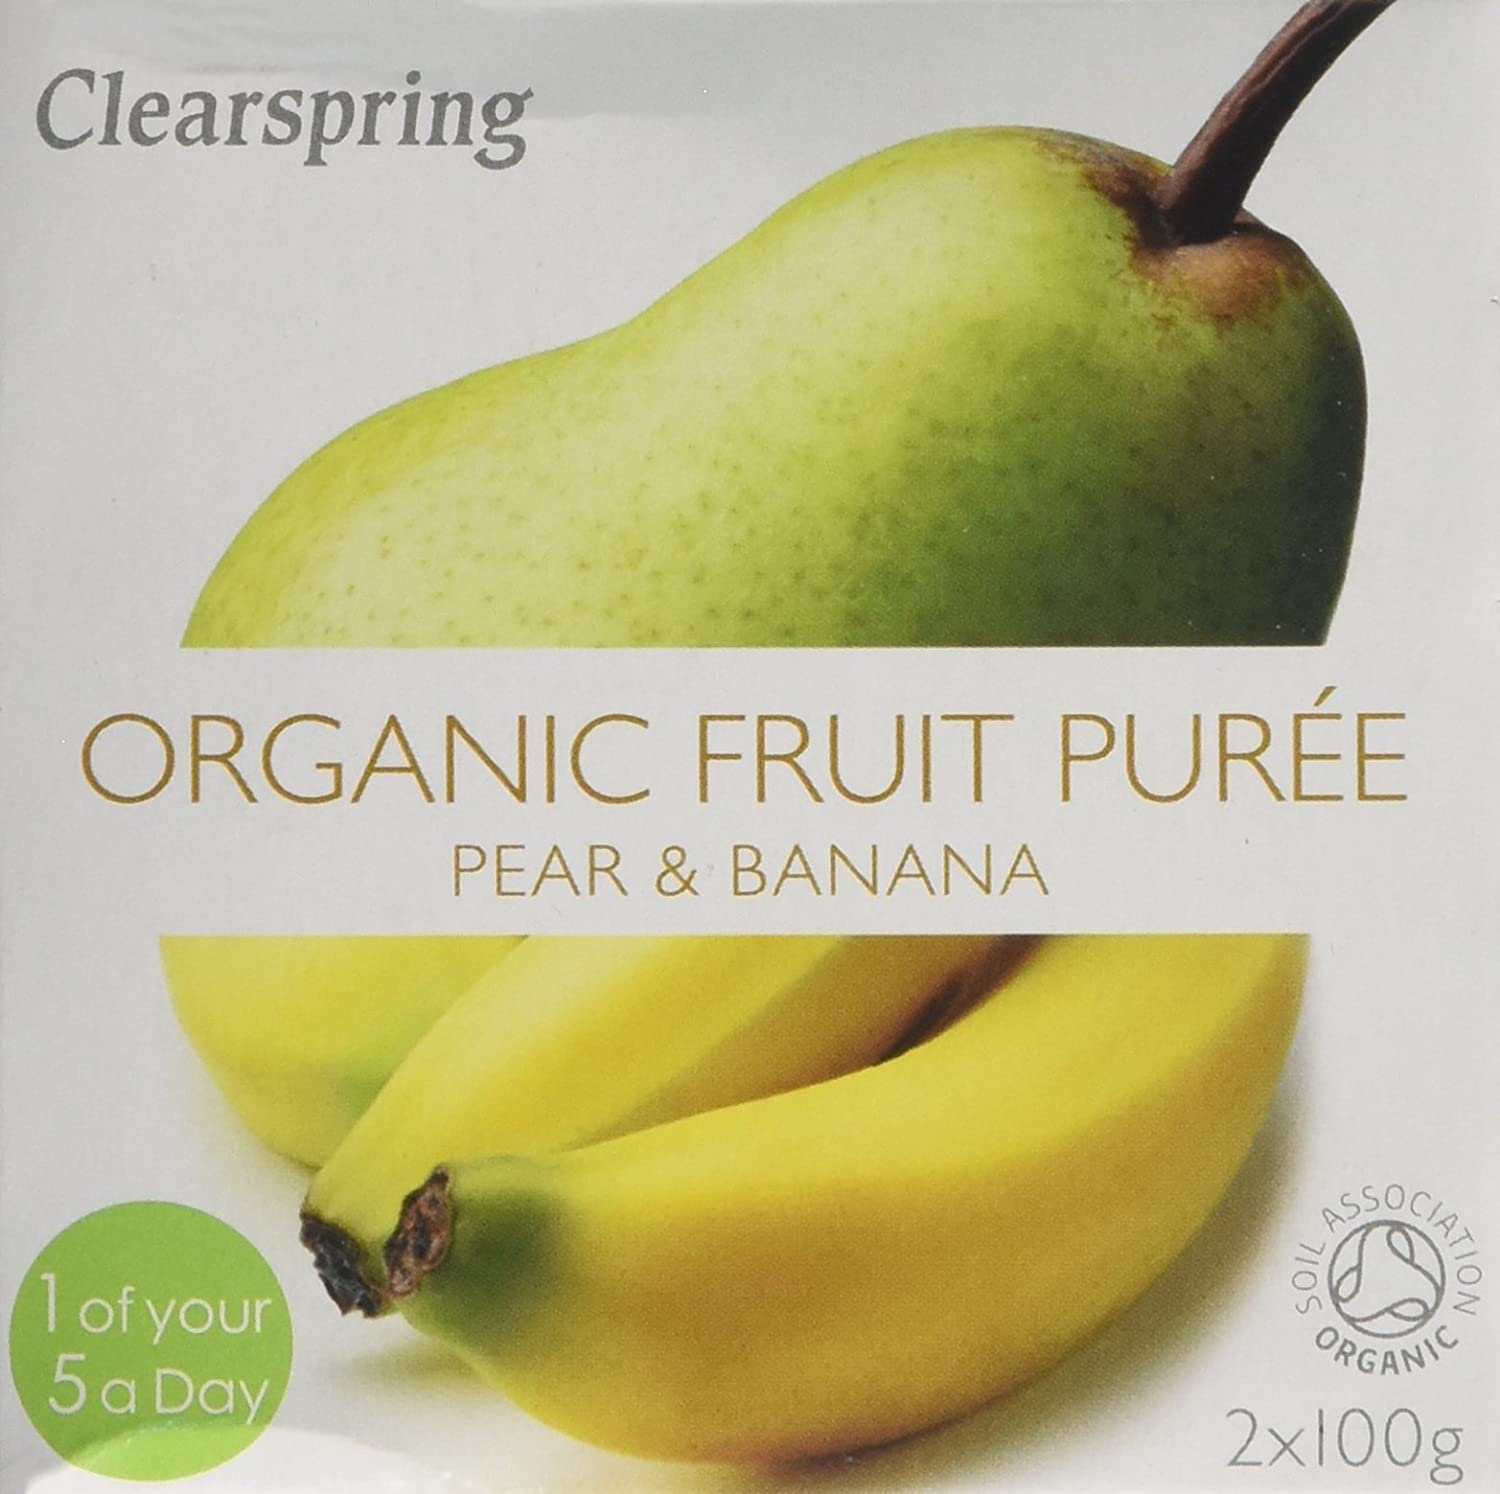 Clearspring Organic Pear and Banana Puree 2x100 g (Pack of 12) 42171